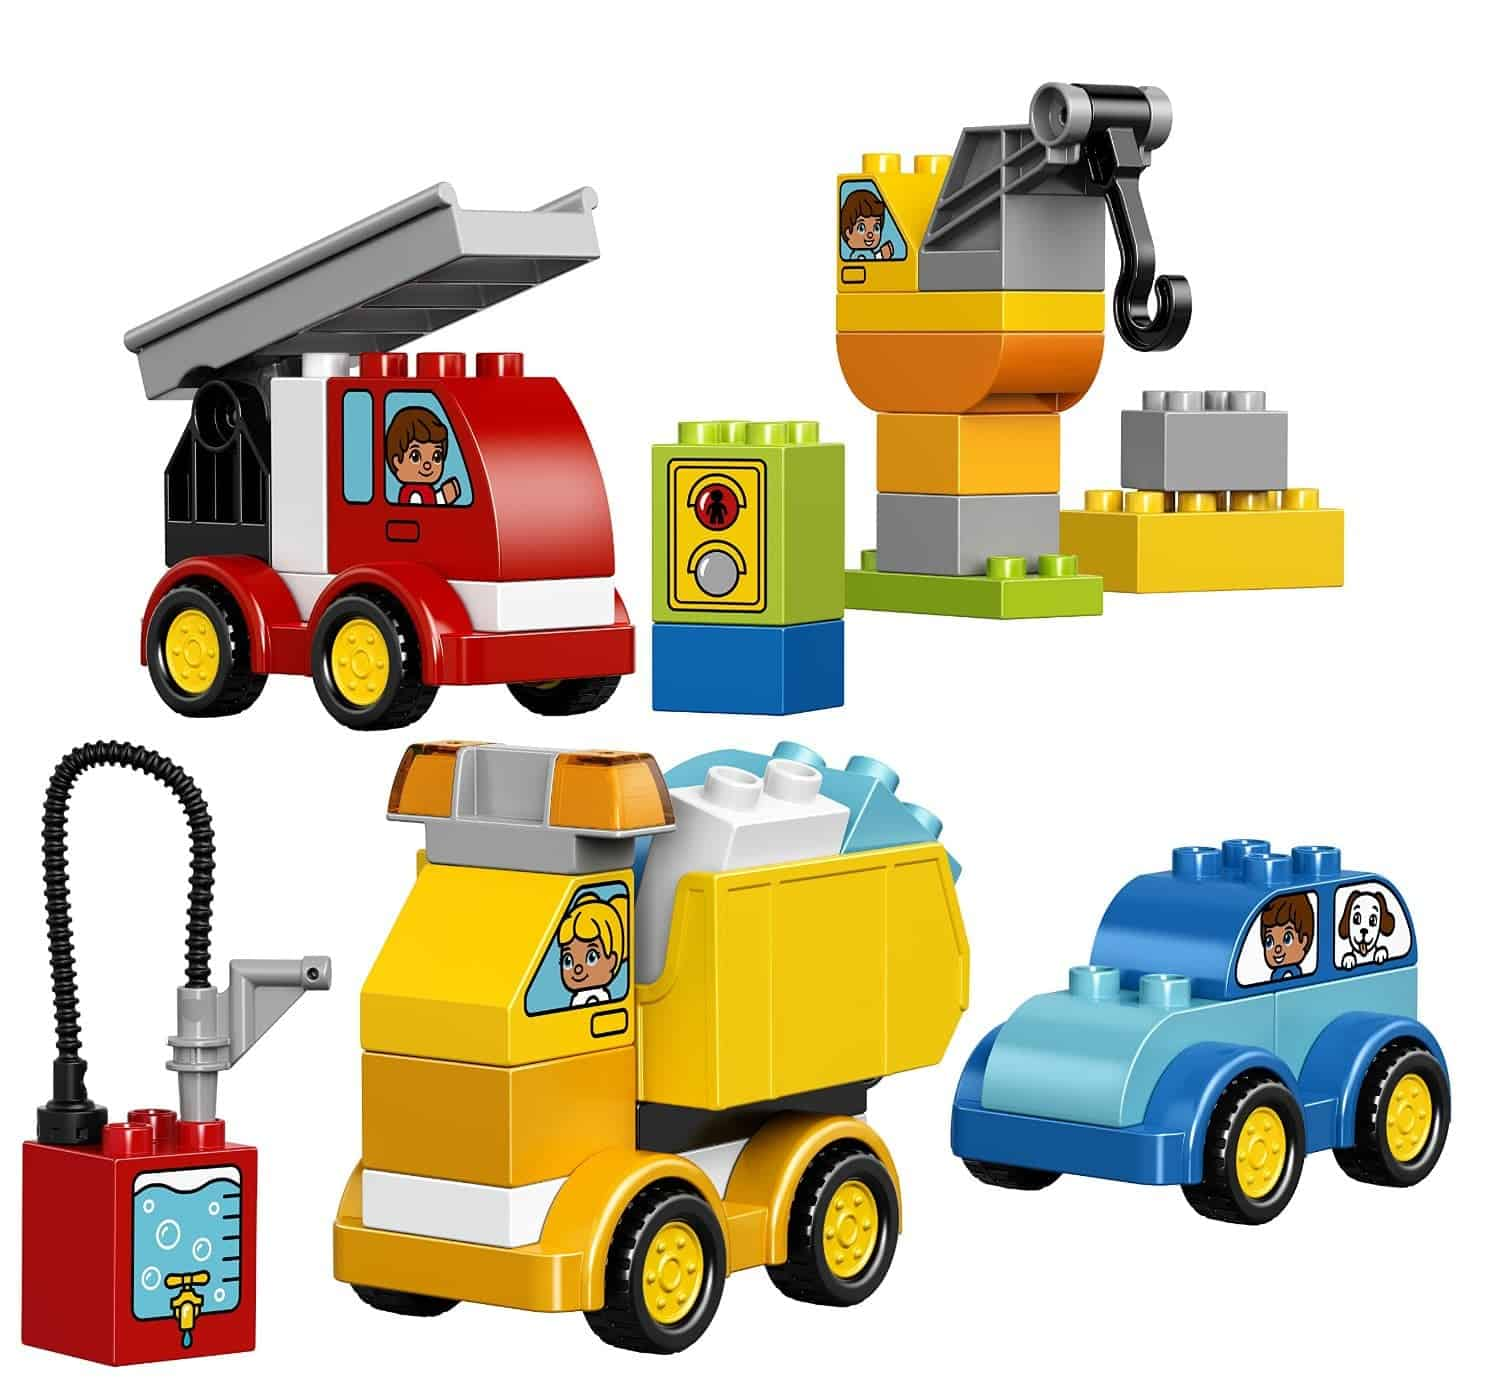 Lego Gift Ideas by Age - Toddler to Twelve Years: My First Cars and Trucks | www.thepinningmama.com